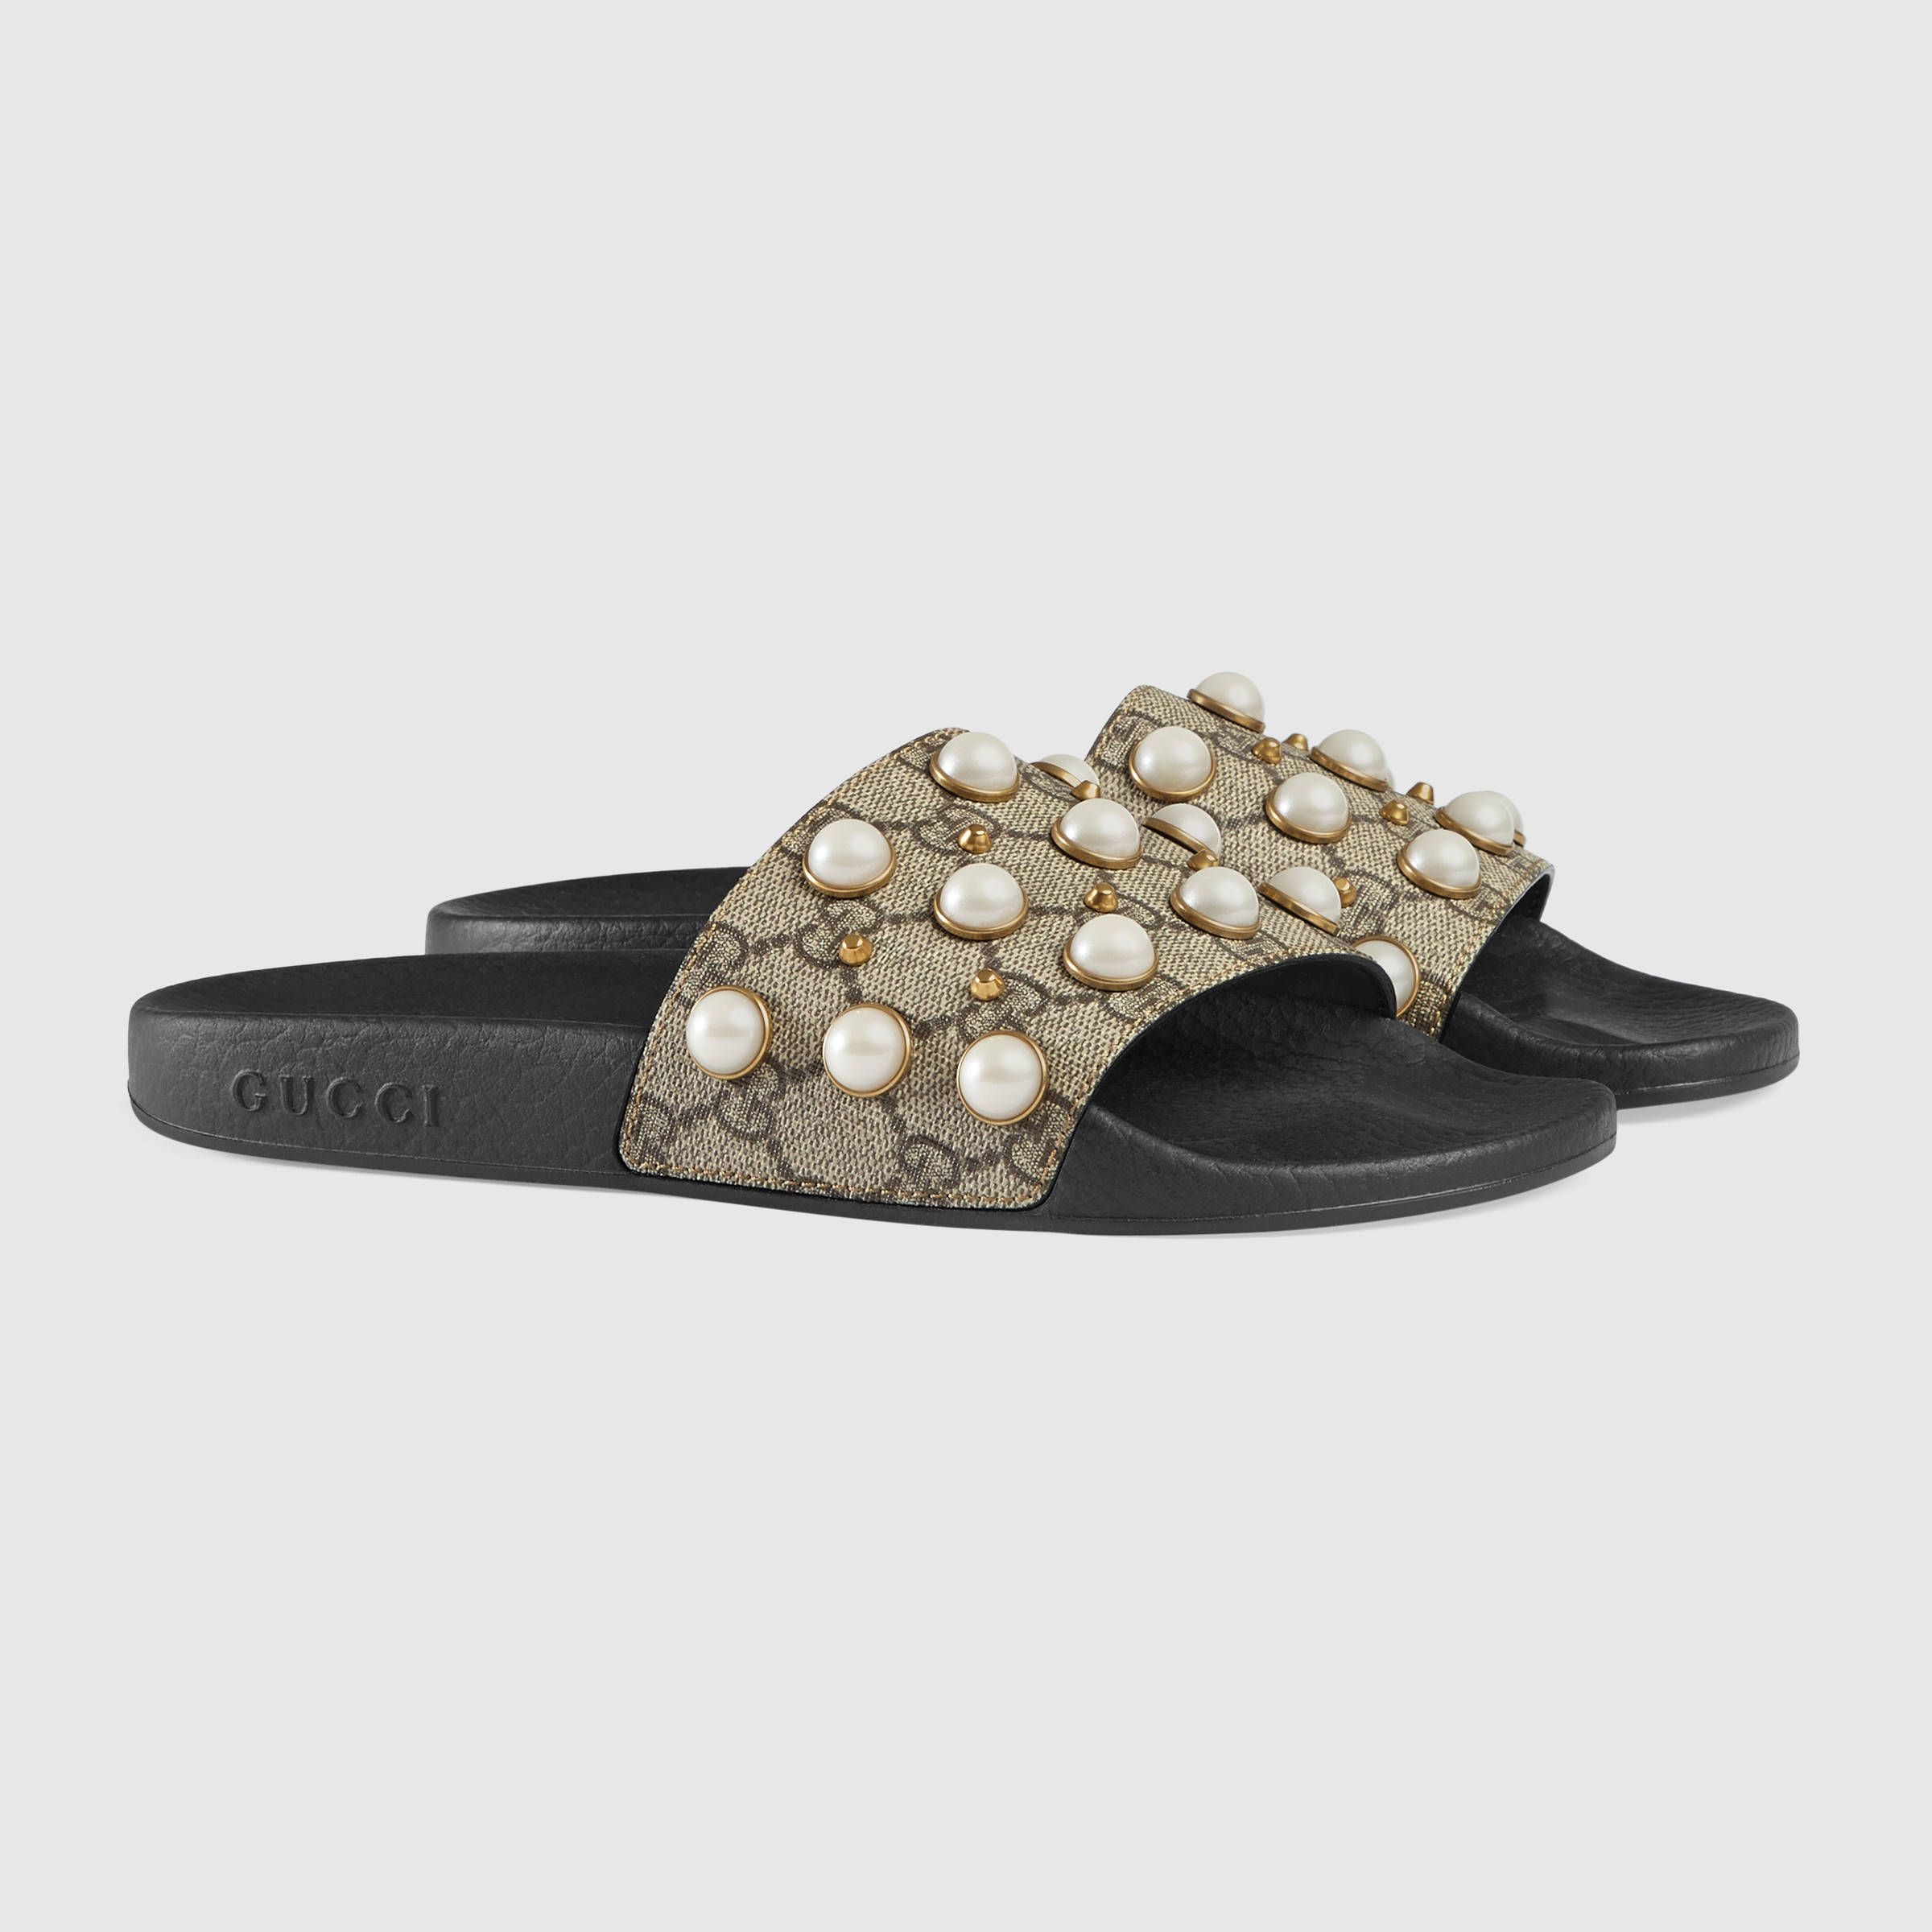 3d4feead Gucci GG Supreme slide with pearls Detail 2 | HOLINESS DOSEN'T MEAN ...